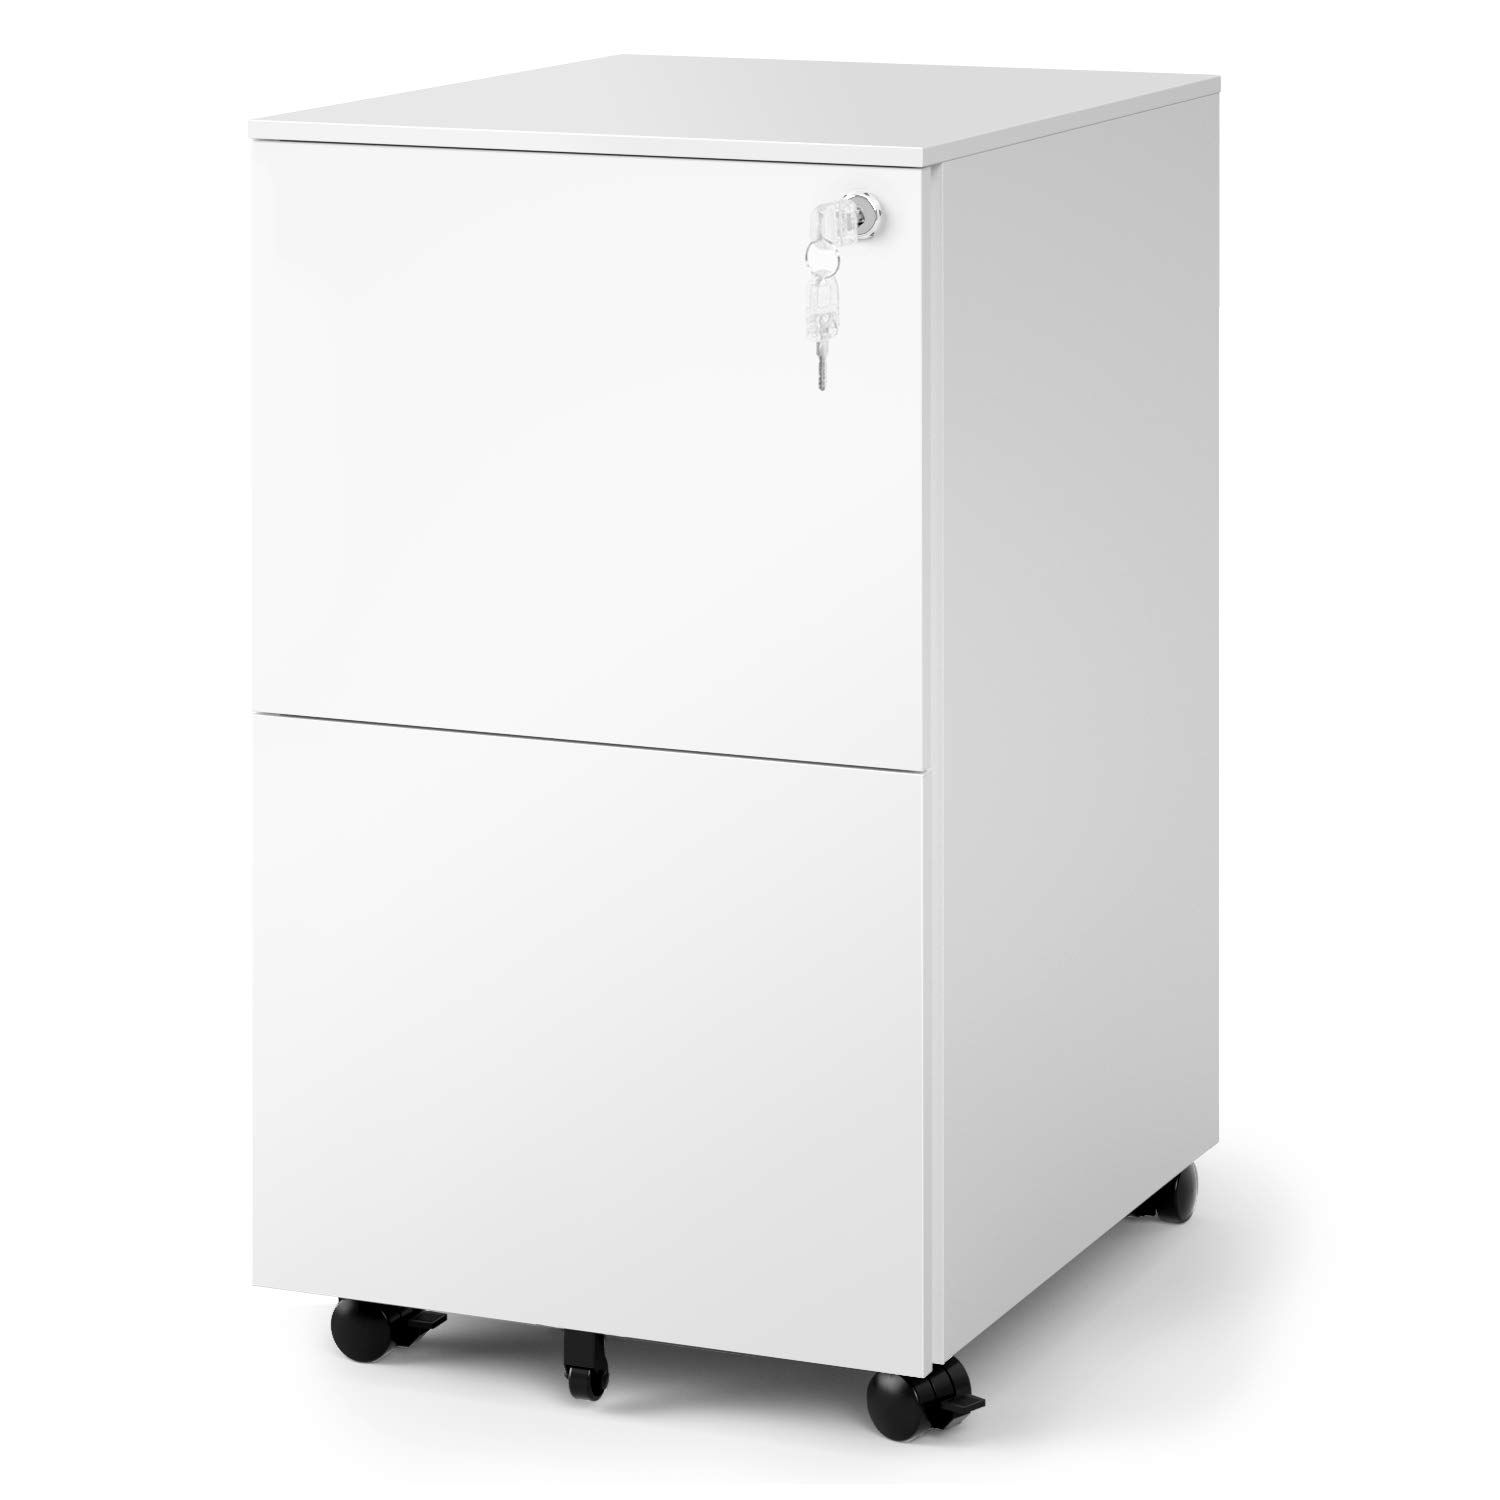 DEVAISE 2-Drawer Mobile File Cabinet with Lock, Commercial Vertical Cabinet in White by DEVAISE